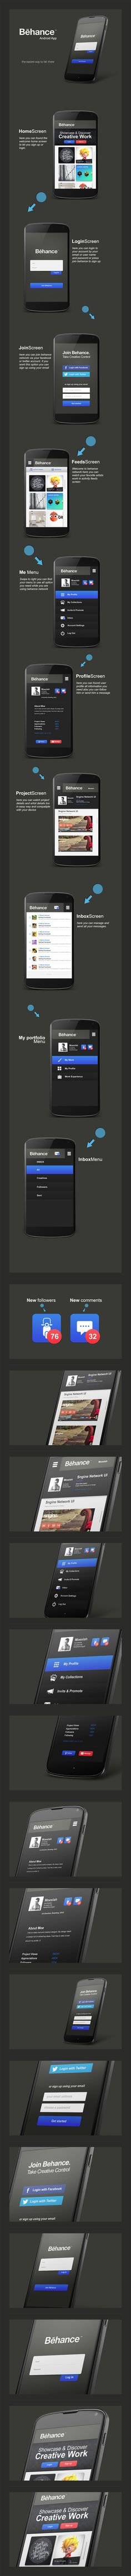 Behance Network android app re-design by Moe slah, via Behance *** Behance Network android app re-design